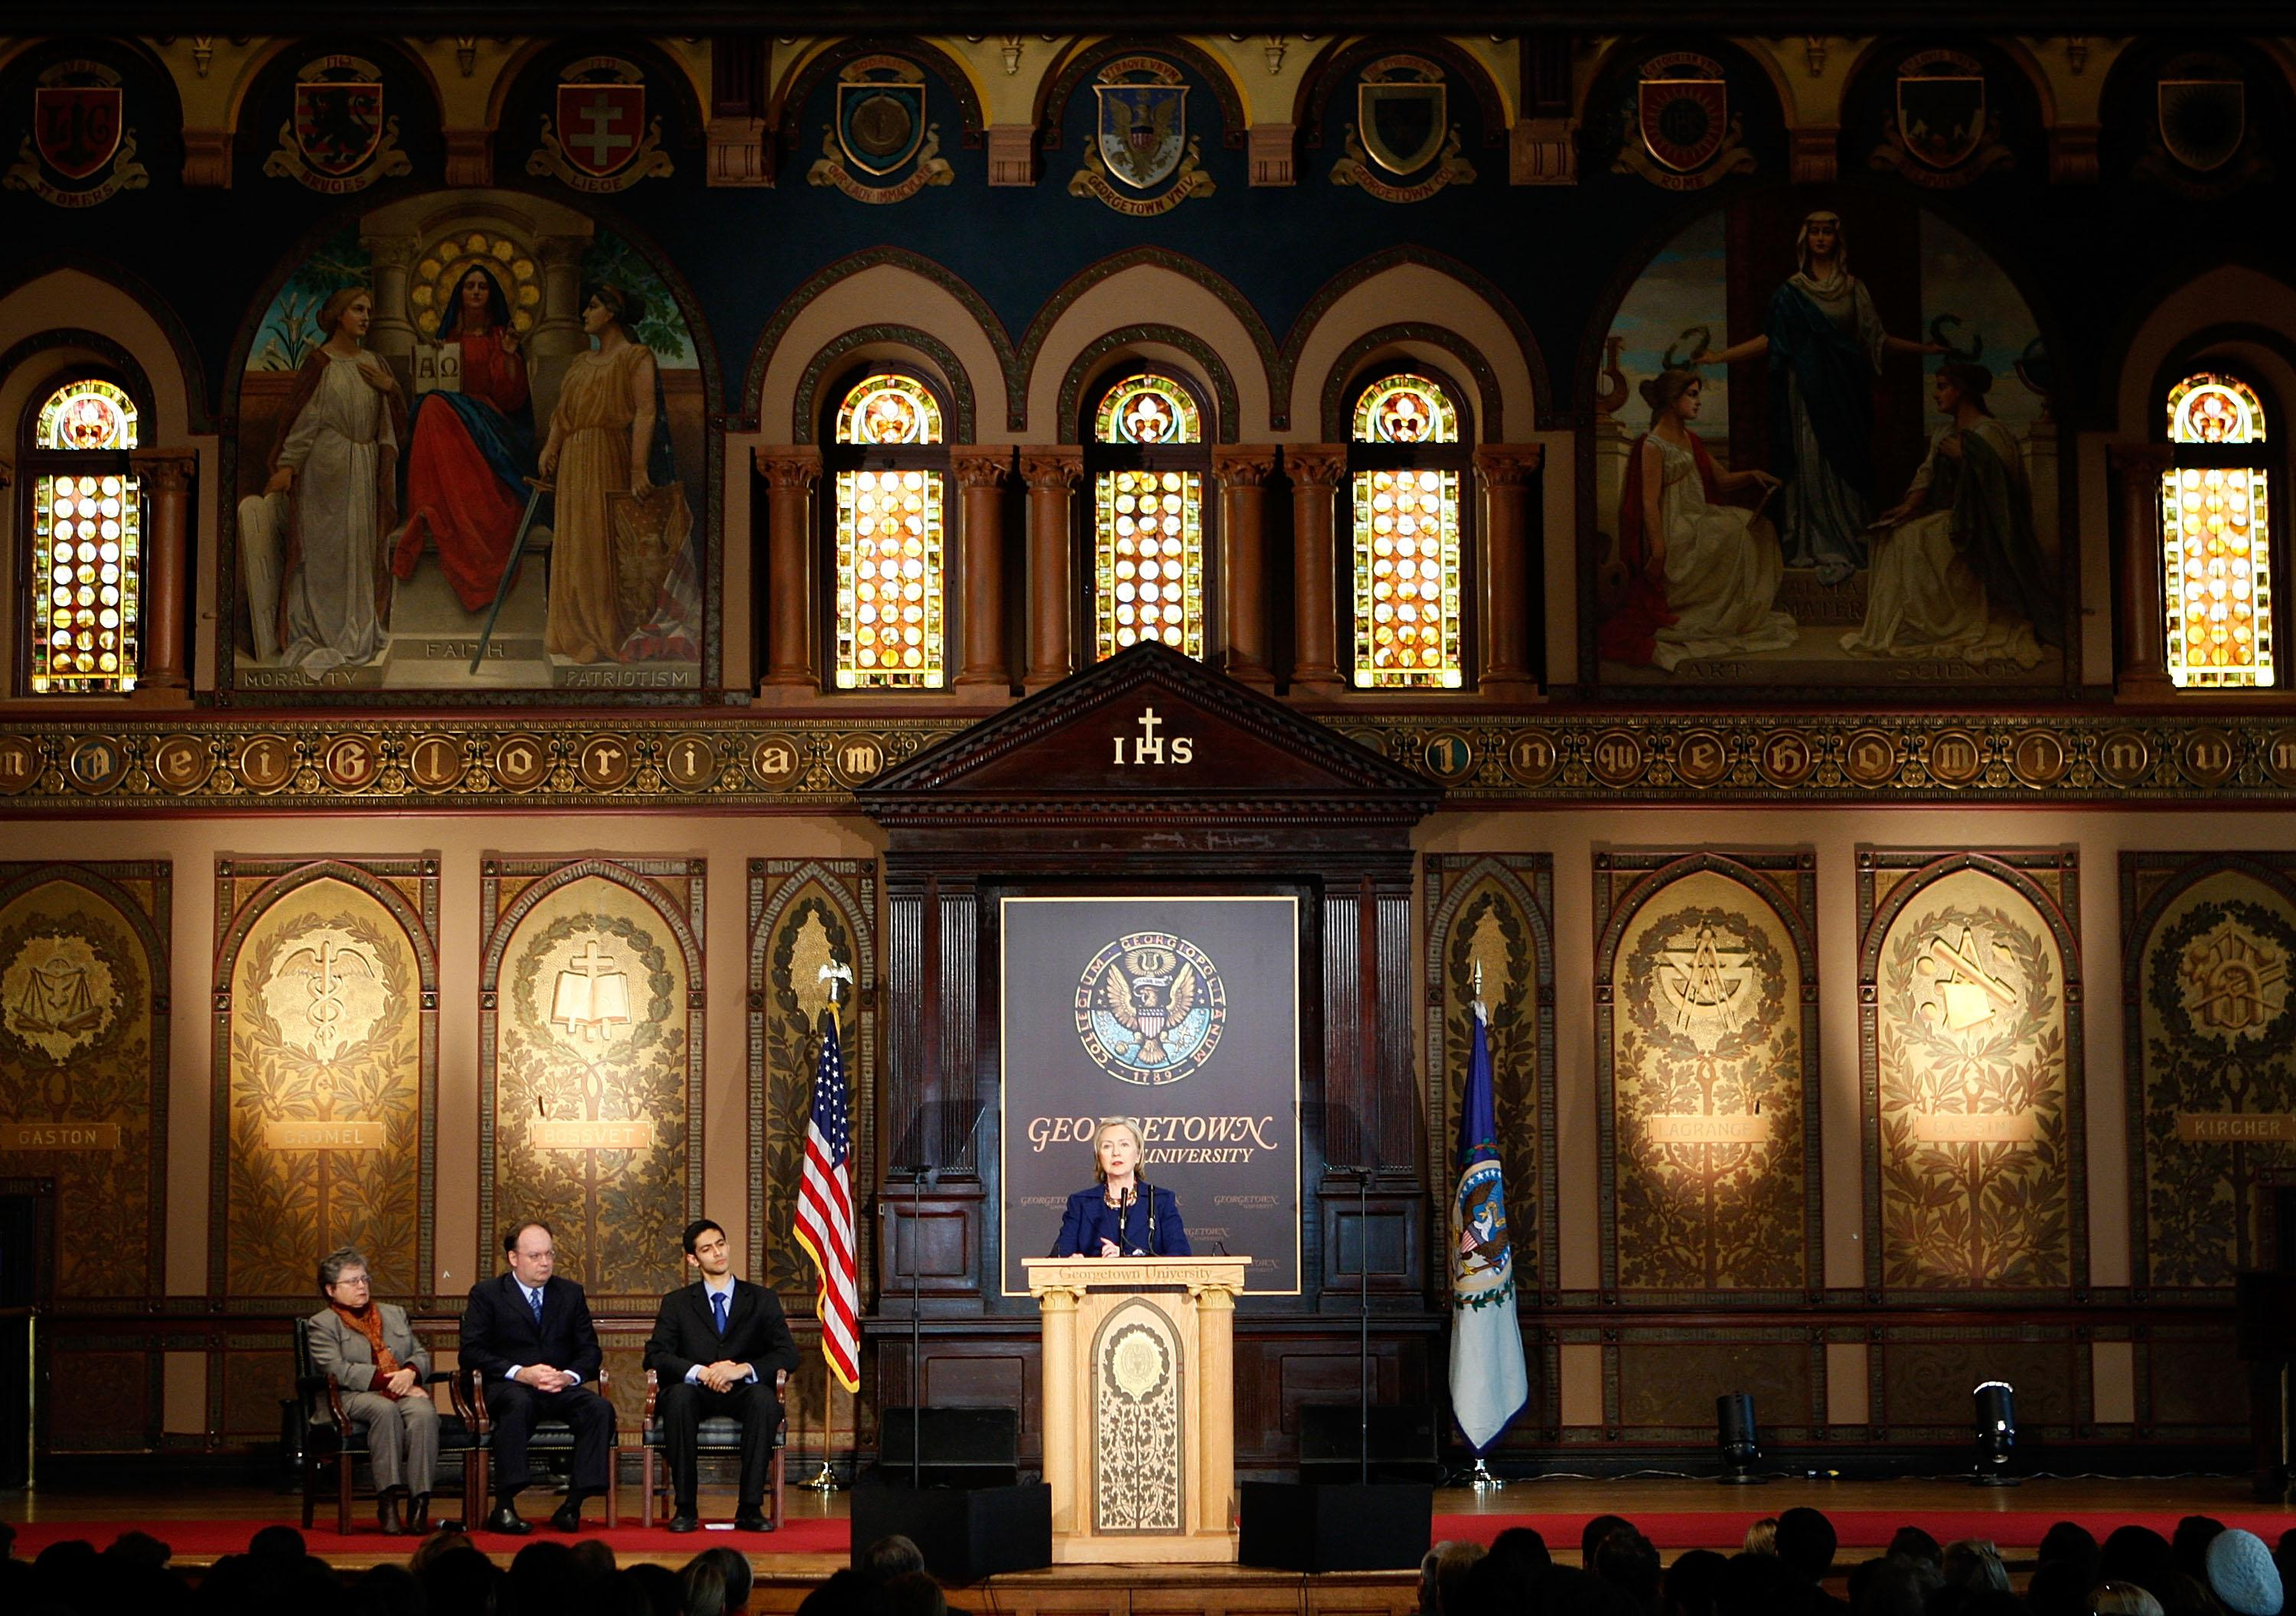 Then-Secretary of State Hillary Rodham Clinton addresses students and faculty members at Georgetown University on Dec. 14, 2009